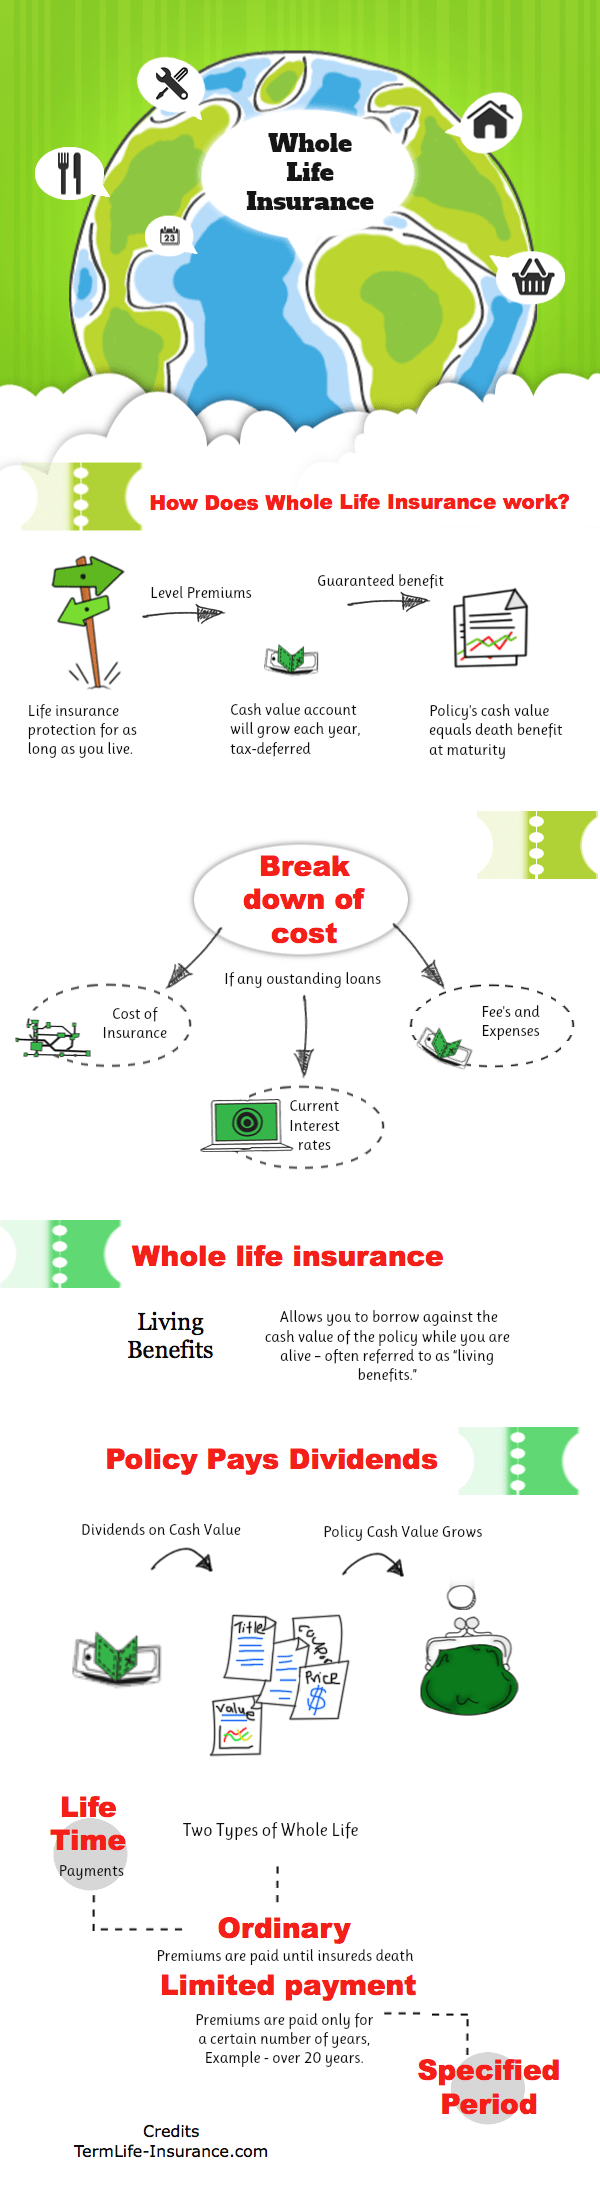 Life Insurance Quotes Whole Life Instant Whole Life Insurance Quotesup To $100000 In Coverage.